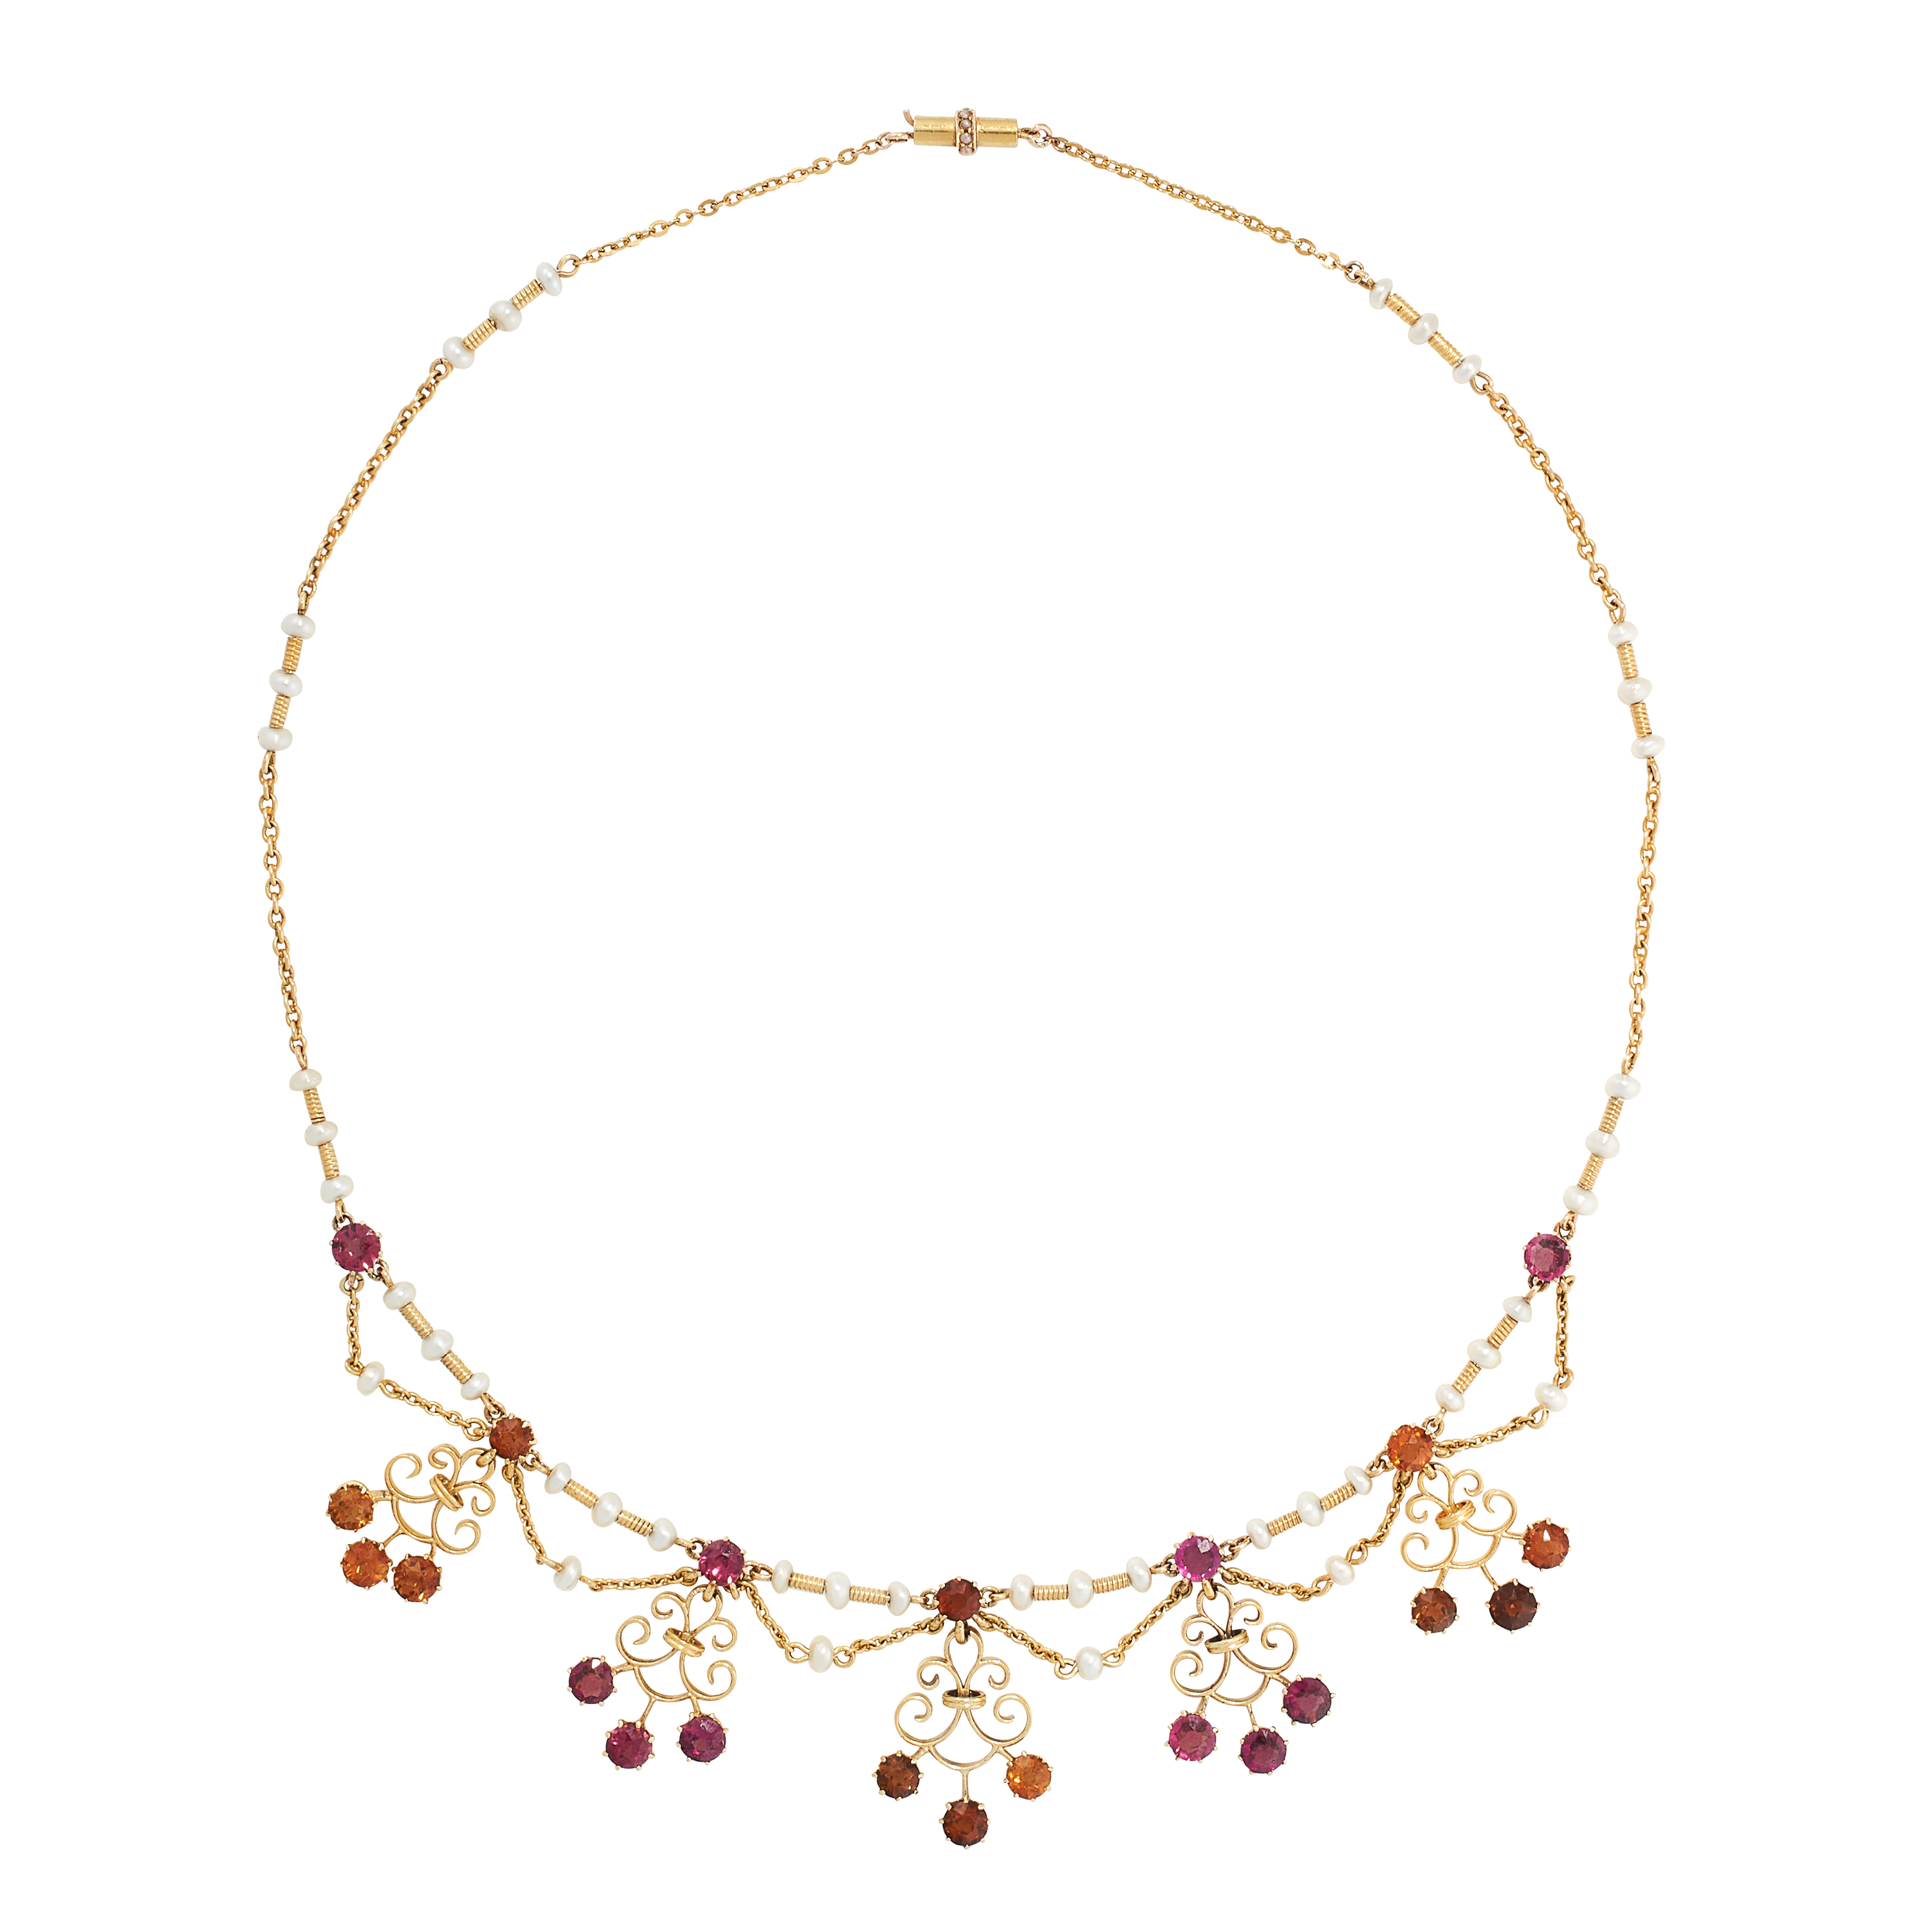 AN ANTIQUE SCOTTISH NATURAL PEARL, CITRINE AND GARNET NECKLACE in yellow gold, the chain